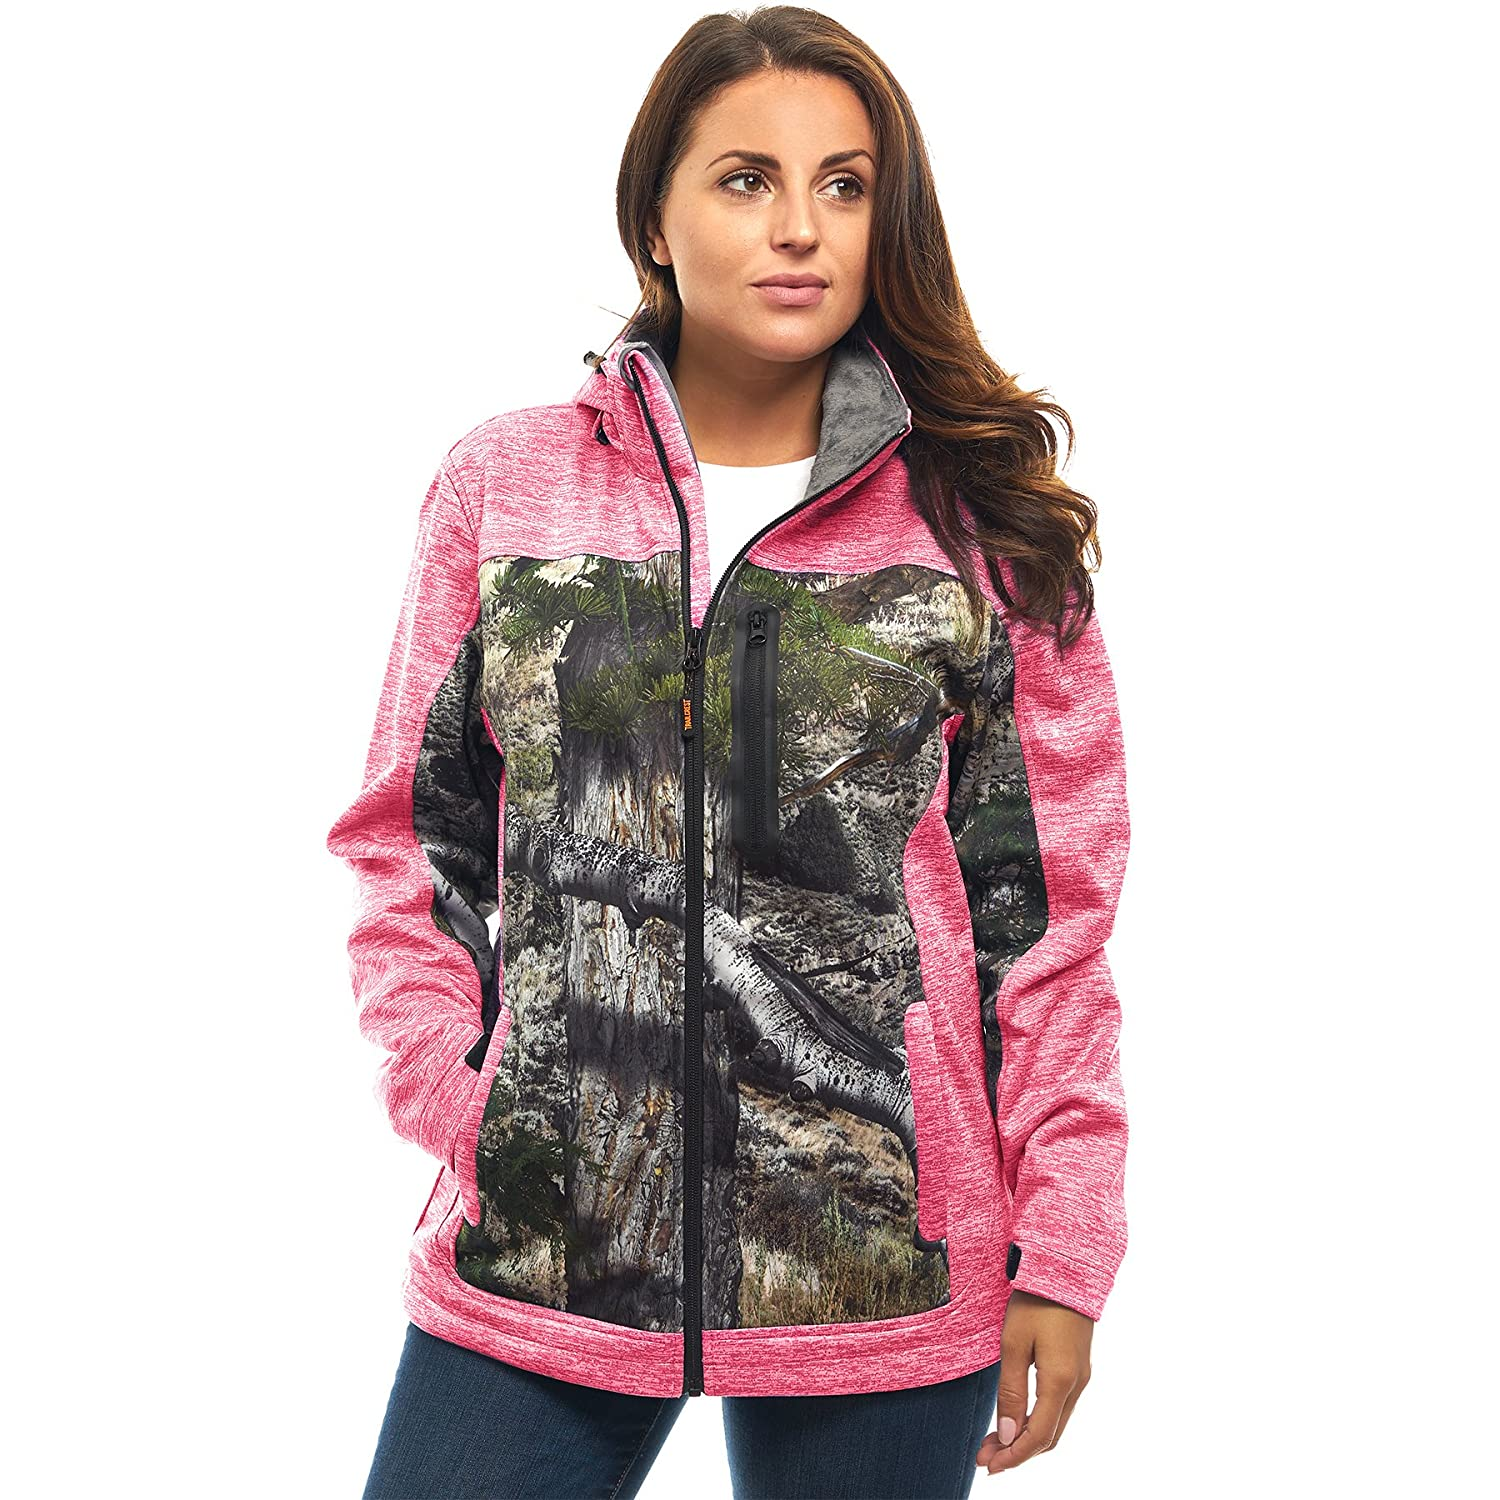 TrailCrest OUTERWEAR レディース B0749CNGG6 L|Pink Heather Mountain CountryTM Pink Heather Mountain CountryTM L